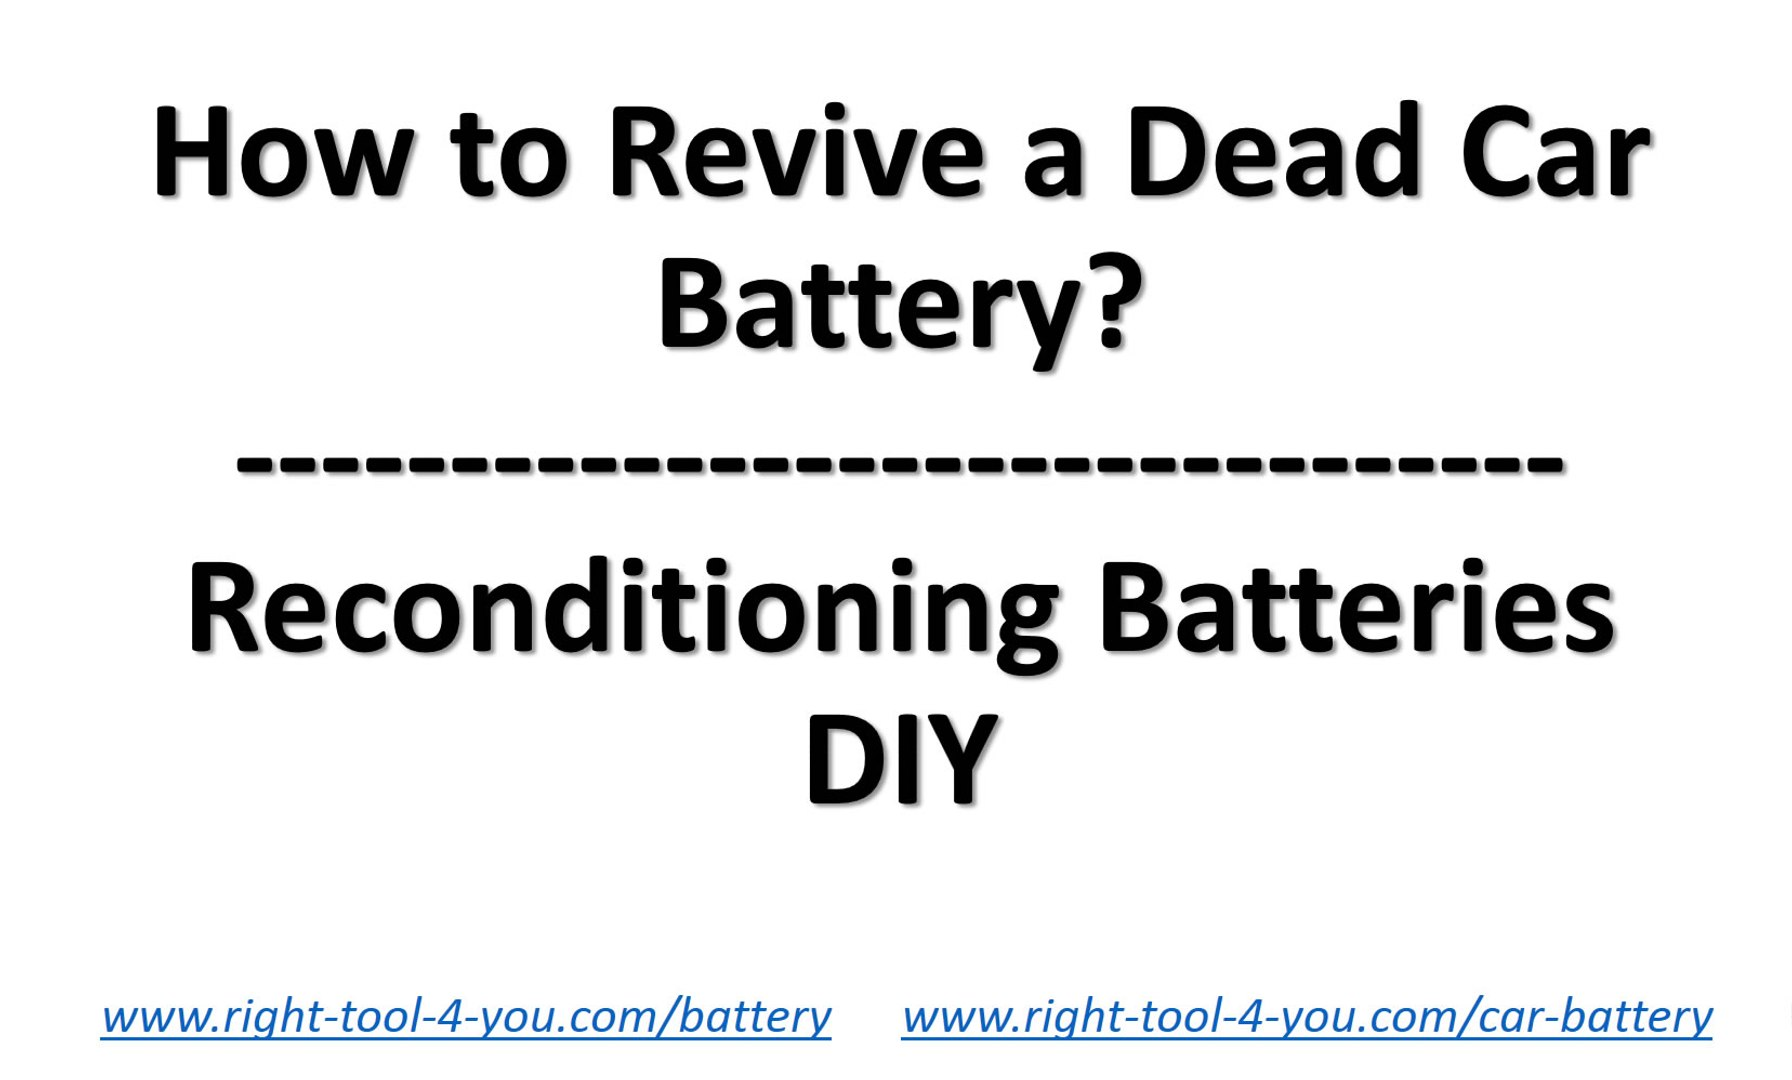 How to Revive a Car Battery and How to Make Dead Batteries Work